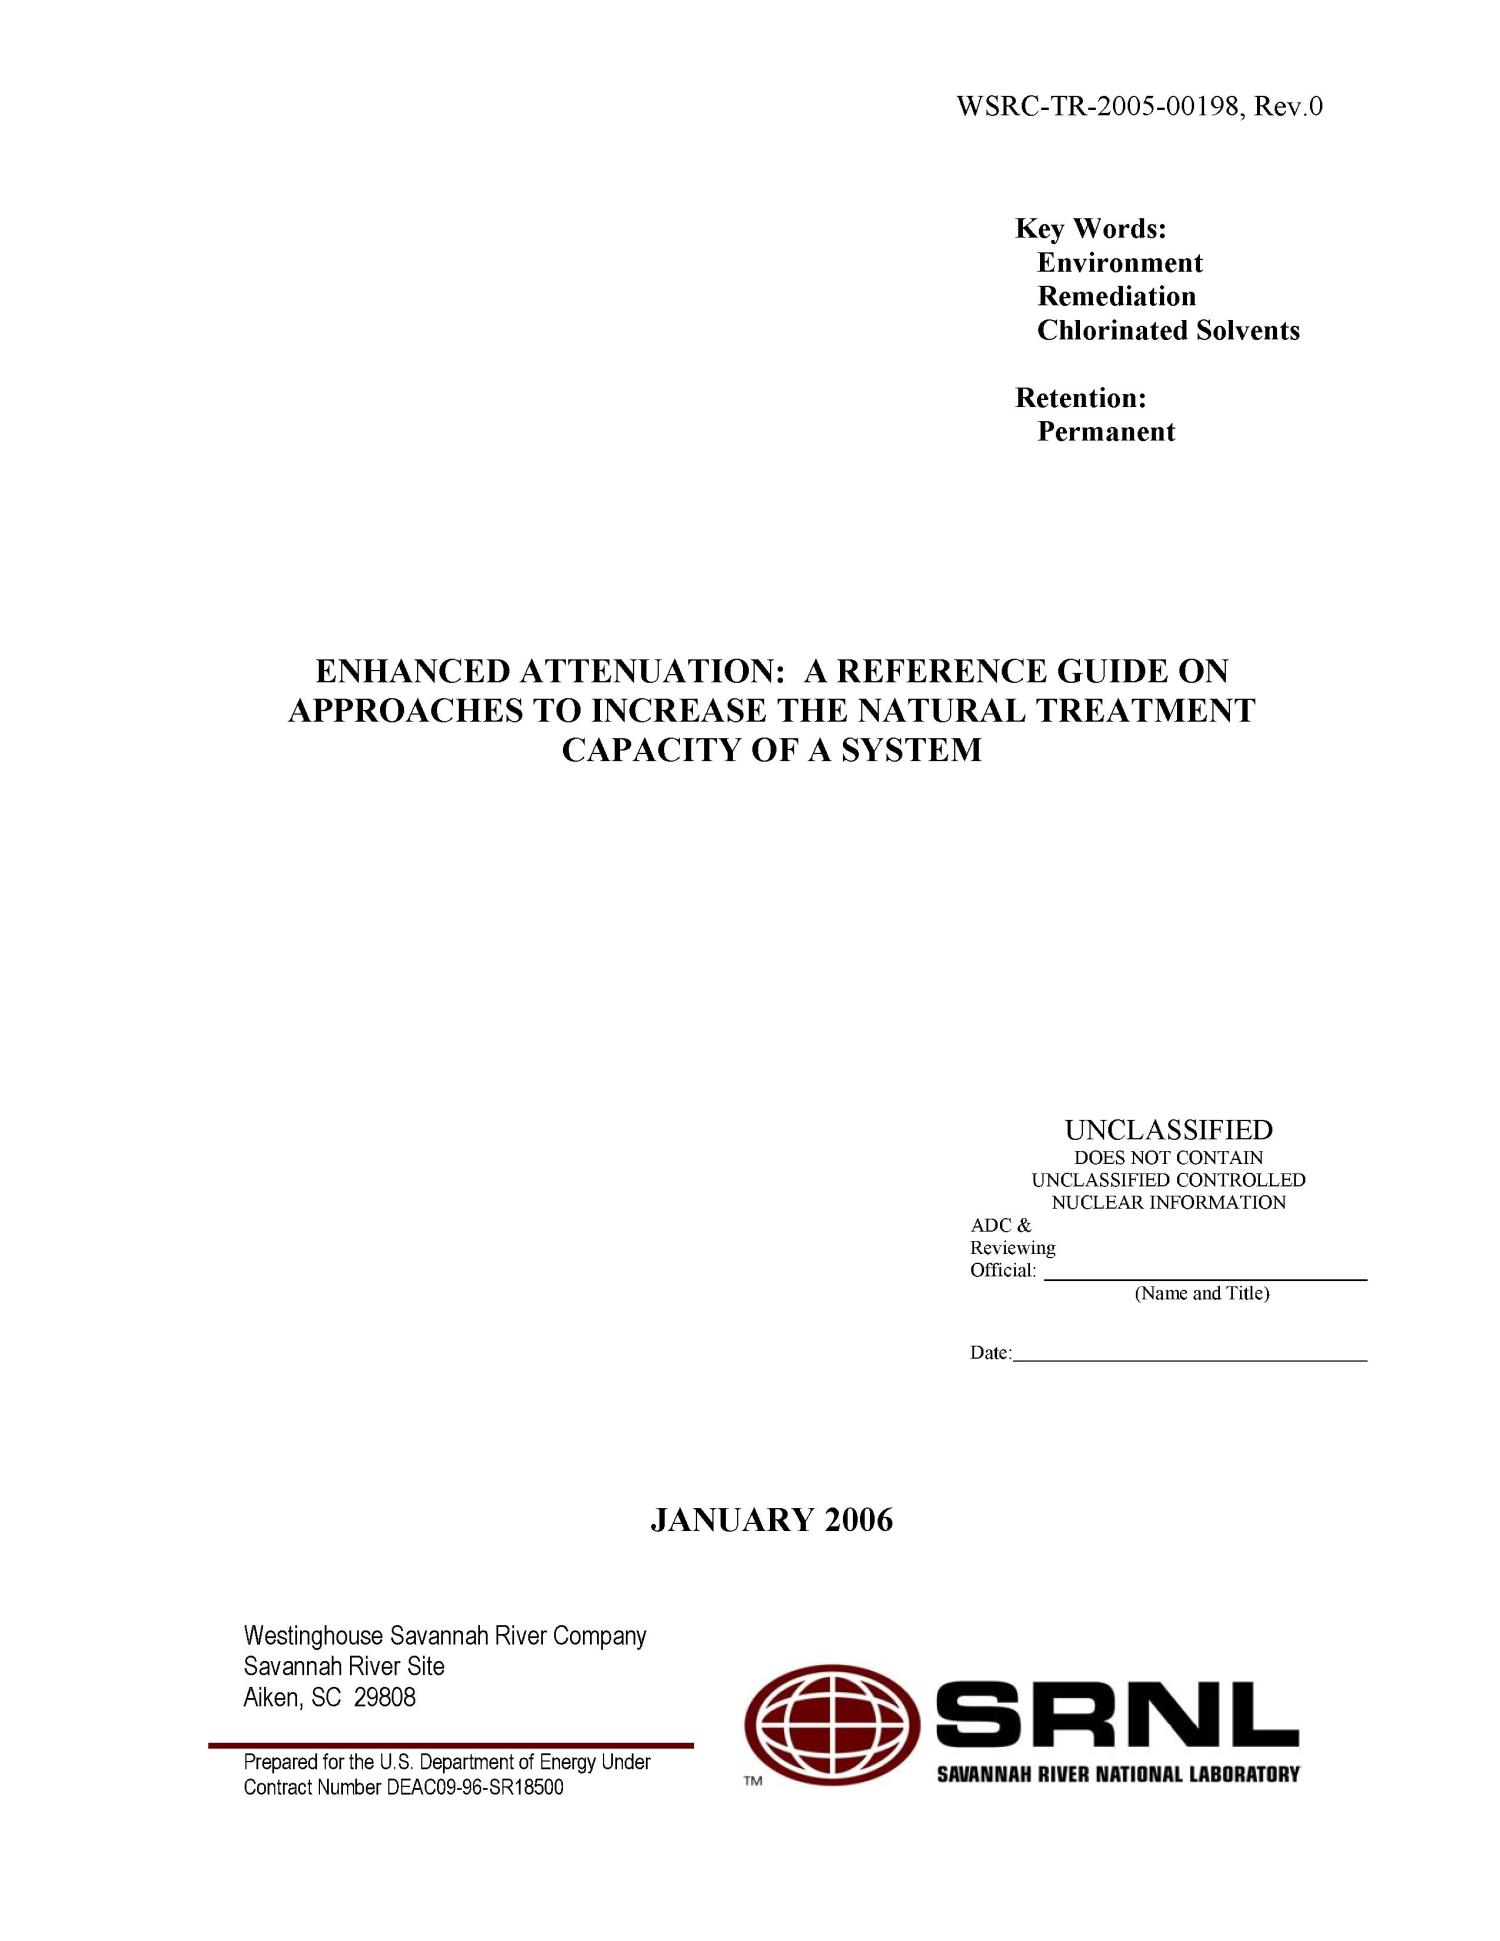 Enhanced Attenuation: A Reference Guide On Approaches To Increase The Natural Treatment Capacity Of A System                                                                                                      [Sequence #]: 2 of 161